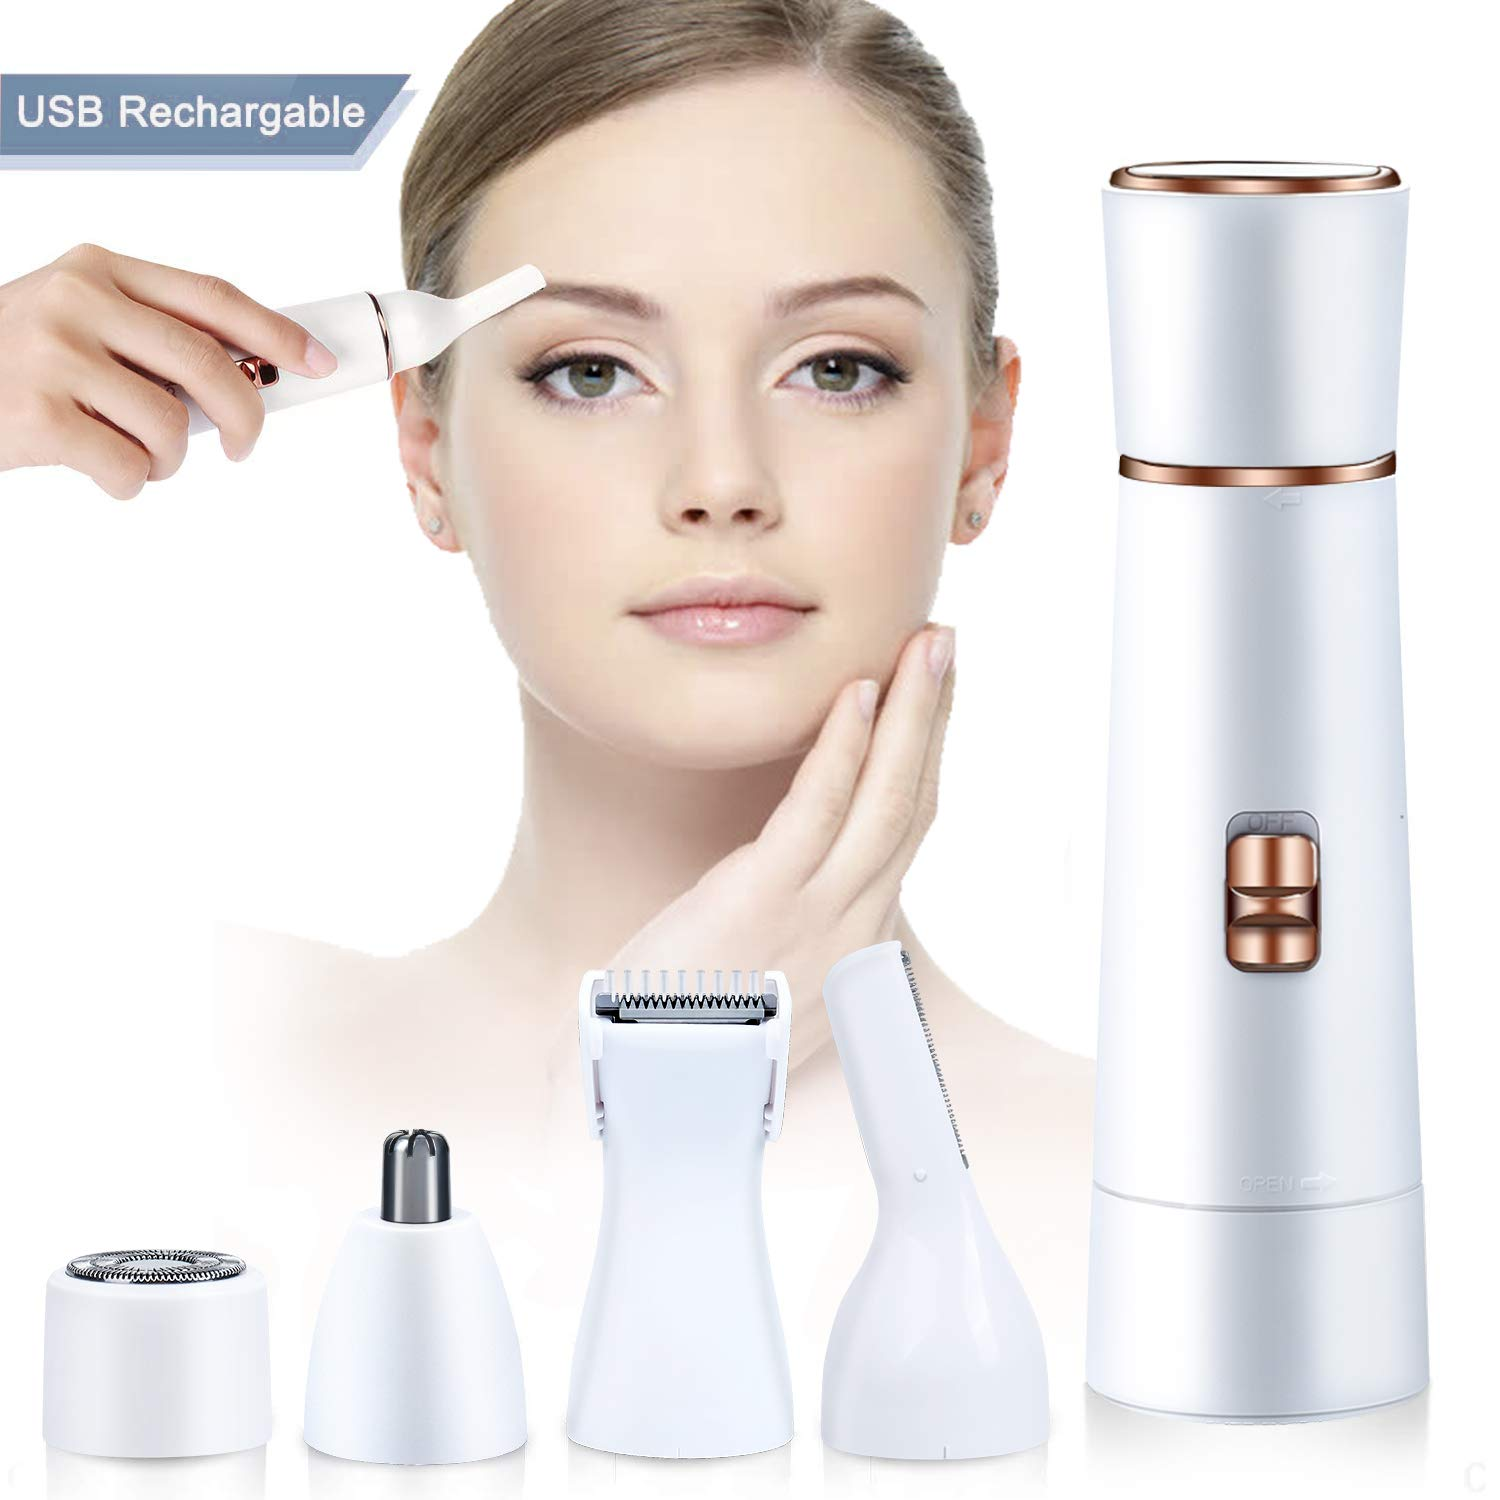 Facial Hair Removal for Women Hair Remover Trimmer 4 in 1 with USB Rechargeable Waterproof for Face, Armpit, Chin, Body, Ear/Eyebrow and Bikini Area